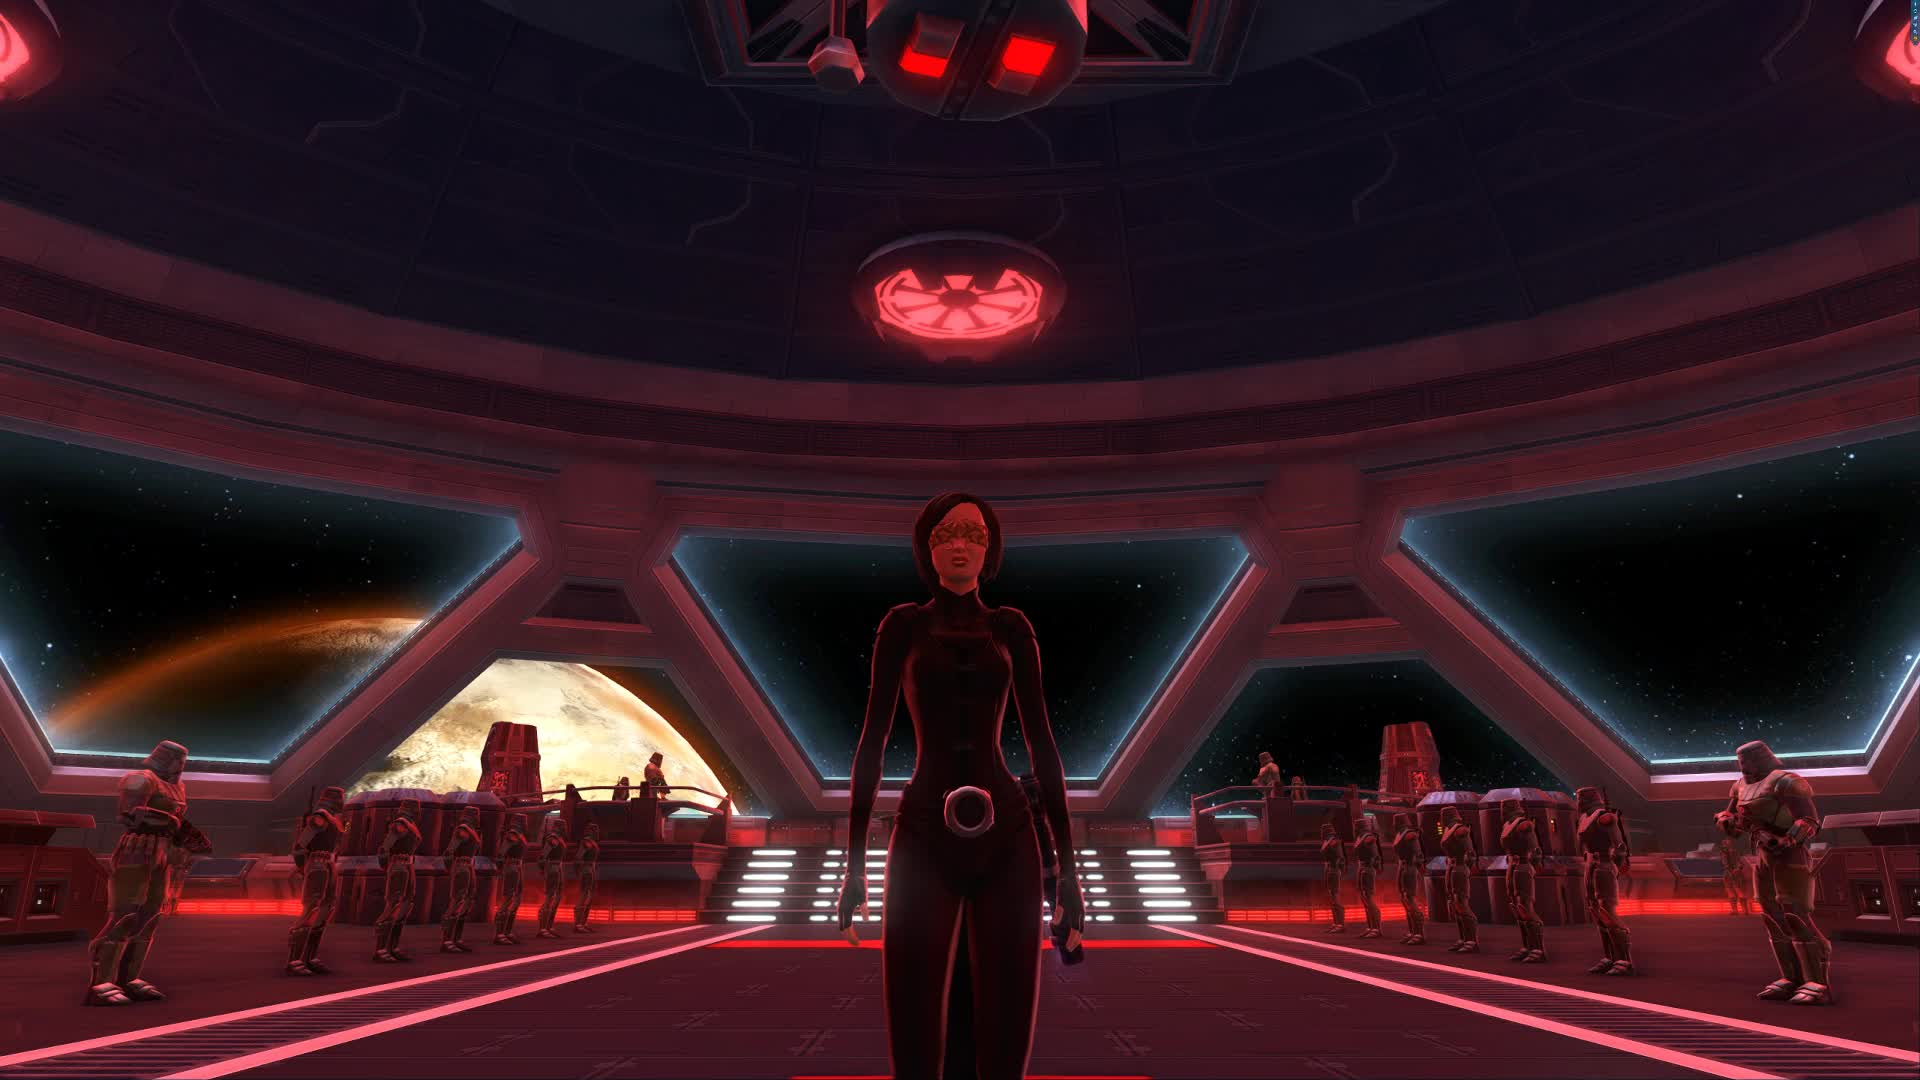 mmo, mmorpg, star wars, star wars the old republic, swtor, the old republic, tor, SWTOR Flex 3 GIFs